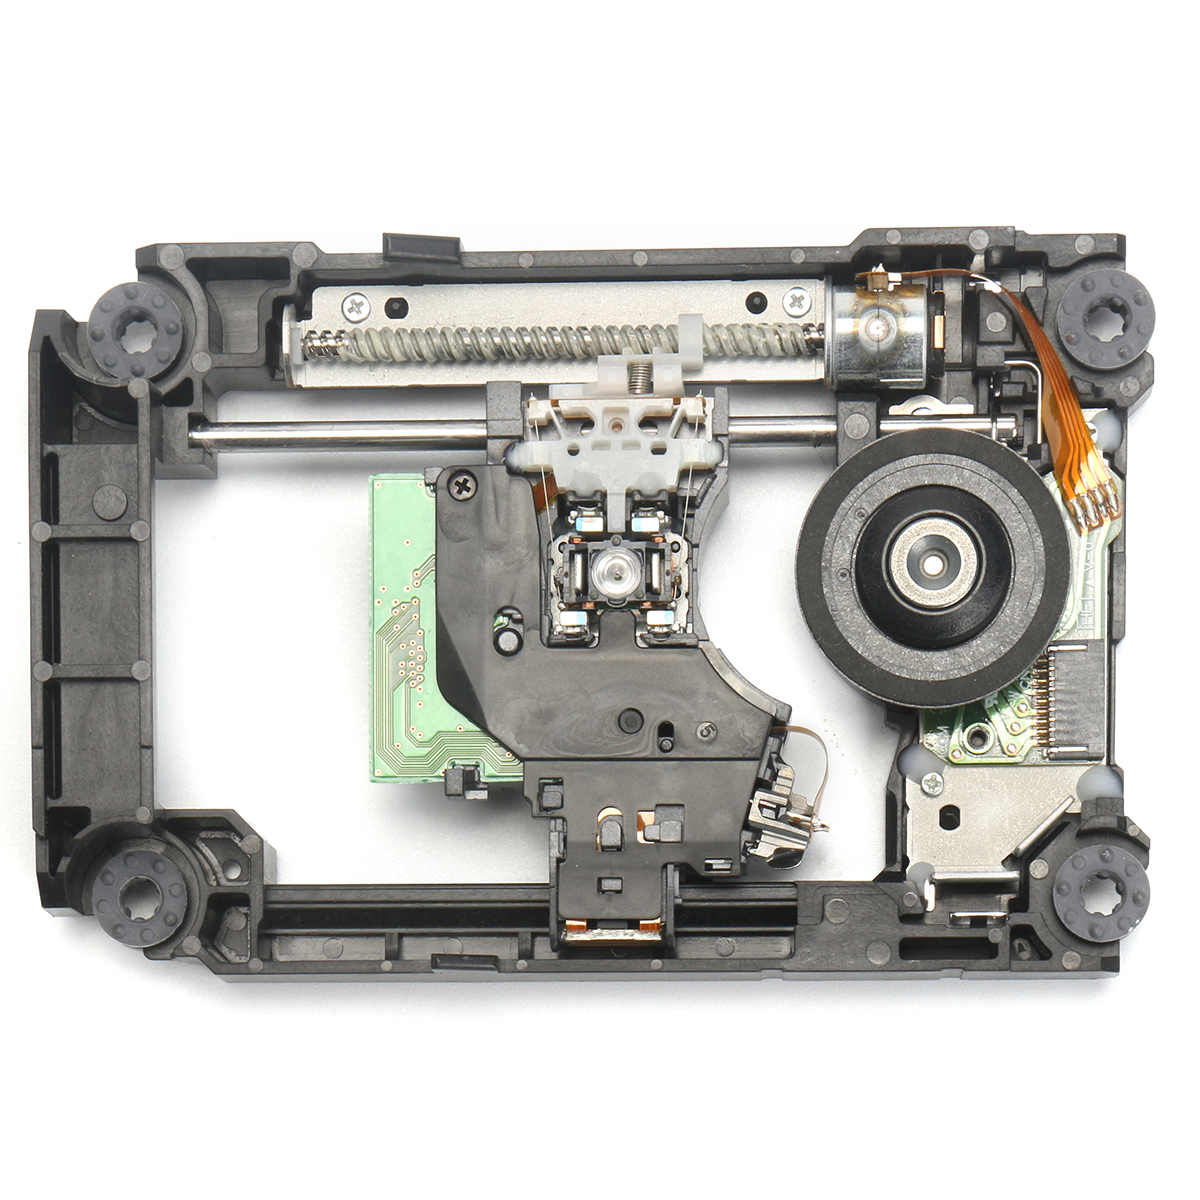 CUH-2015A Drive Deck KEM-496AAA KES-496 Laser for Sony Play'Station 4 PS4 Slim